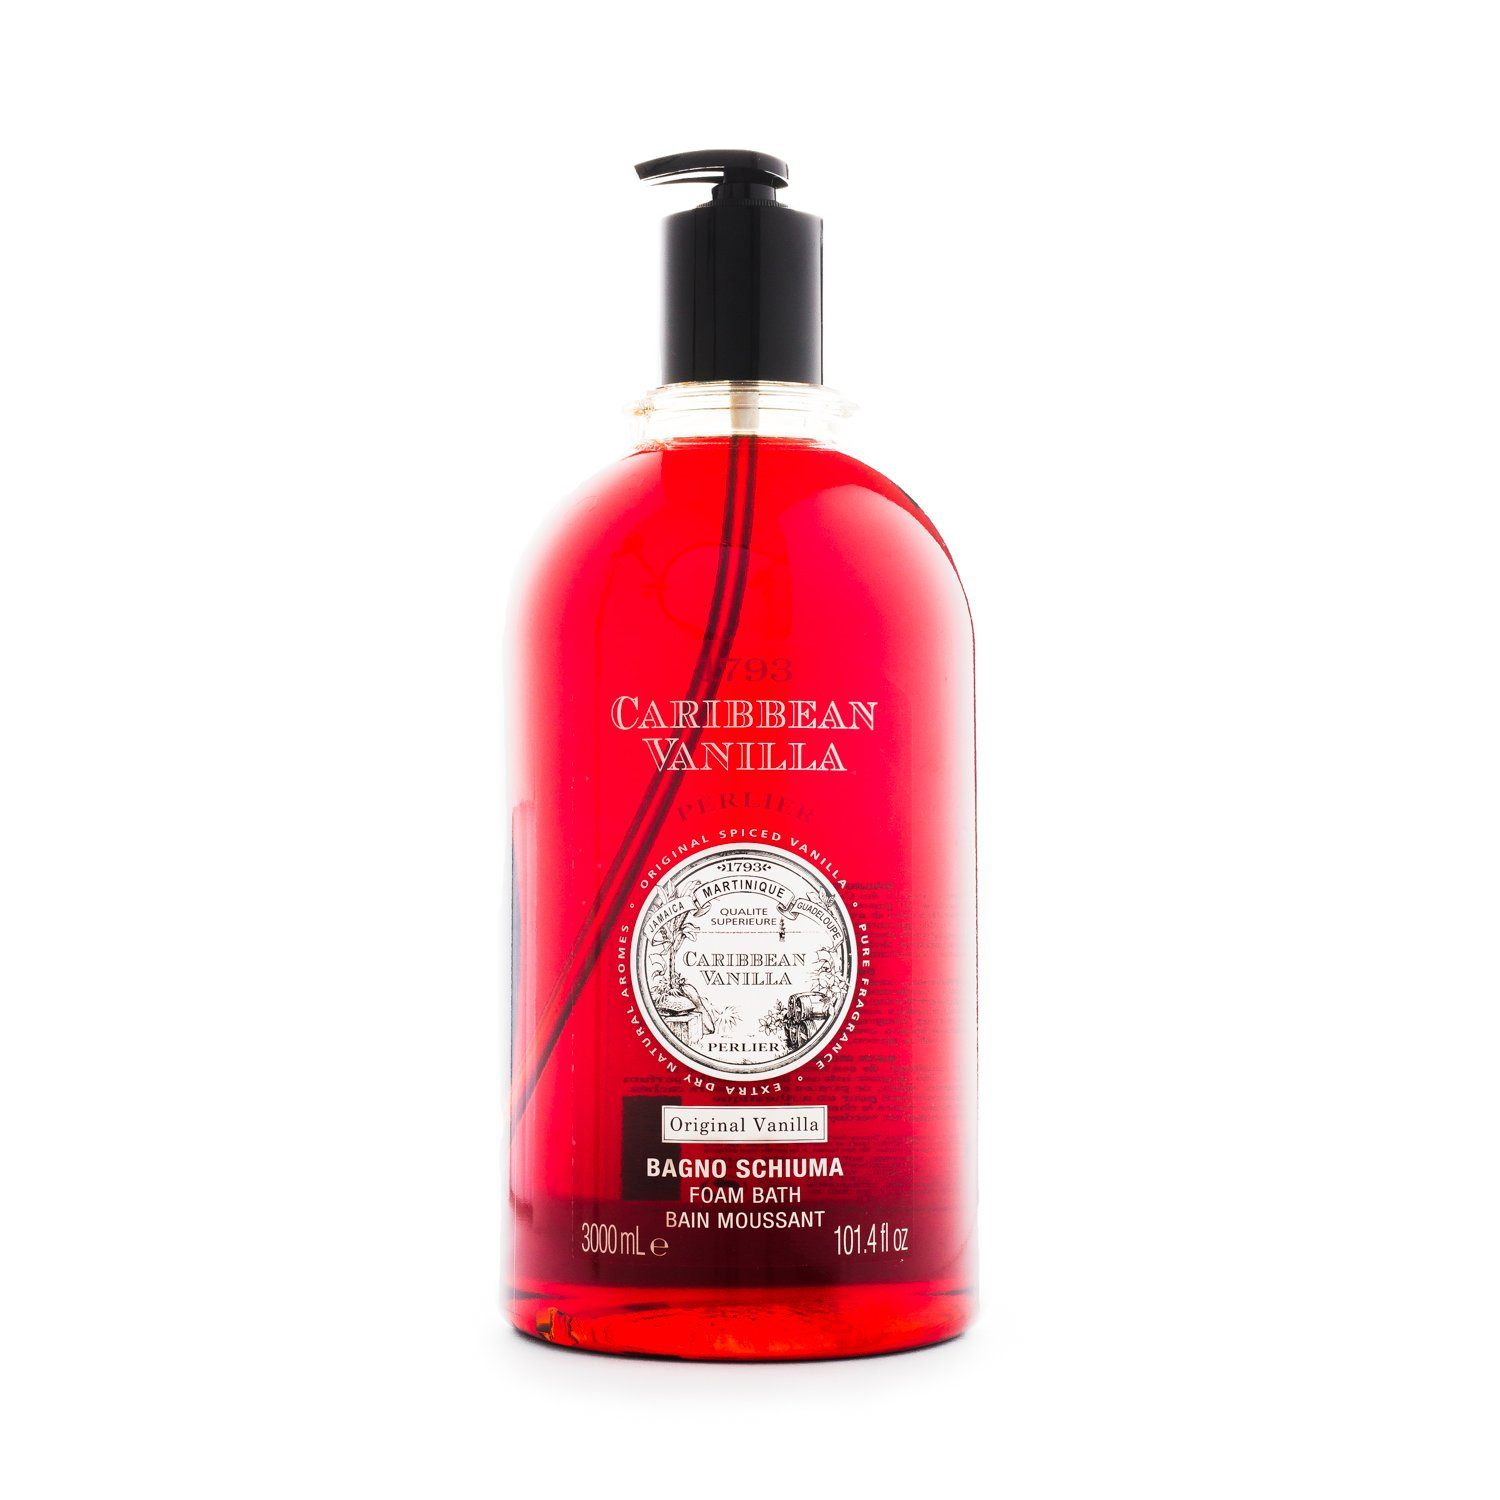 Caribbean Vanilla Original Bath & Shower Gel 101.4 fl oz